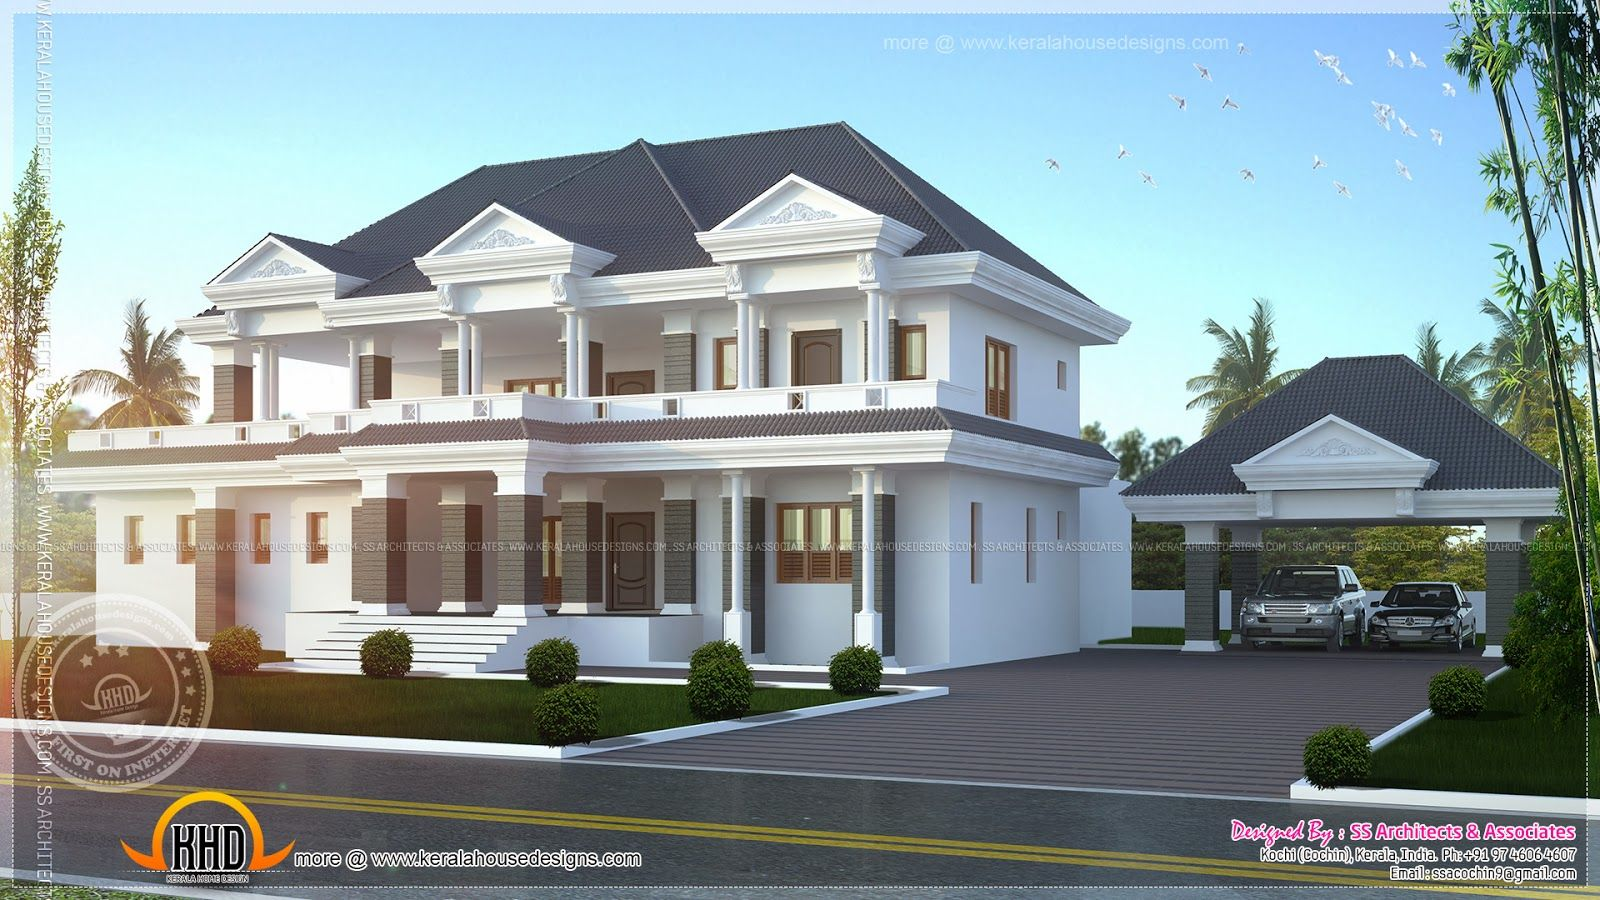 Luxury house plans posh luxury home plan audisb luxury for Luxury houses plans